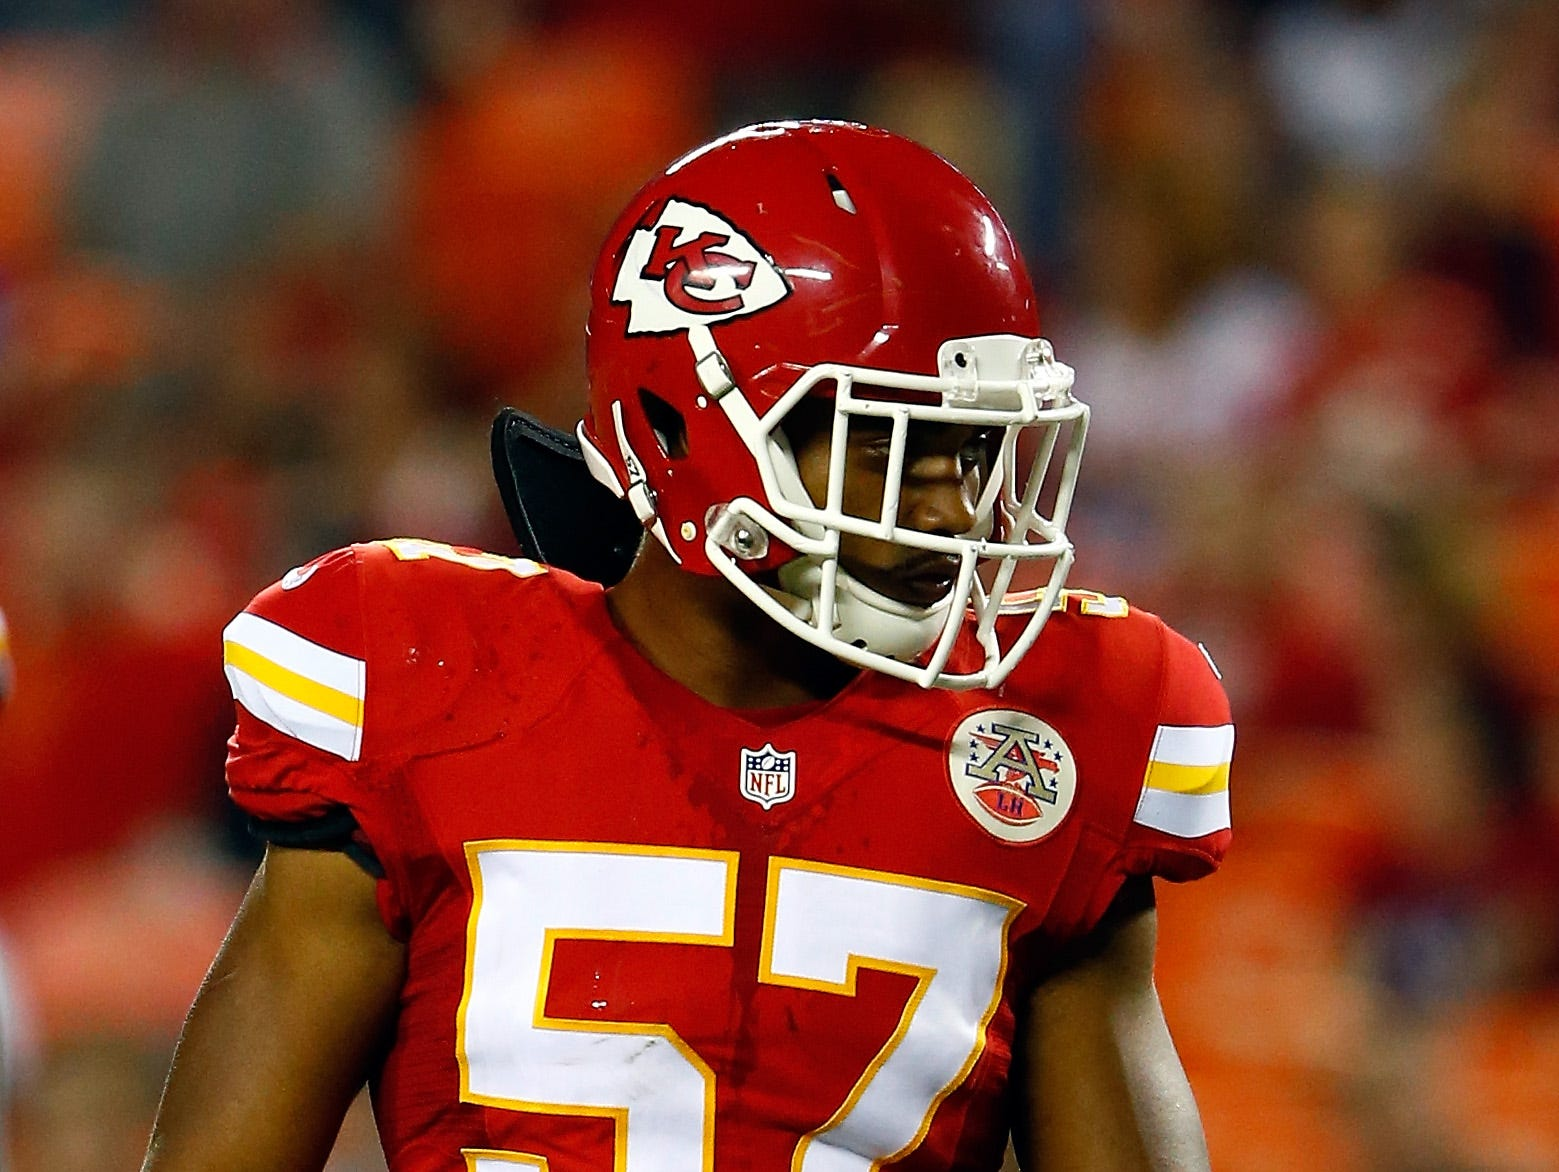 Linebacker D.J. Alexander of the Kansas City Chiefs is headed to the NFL's Pro Bowl.